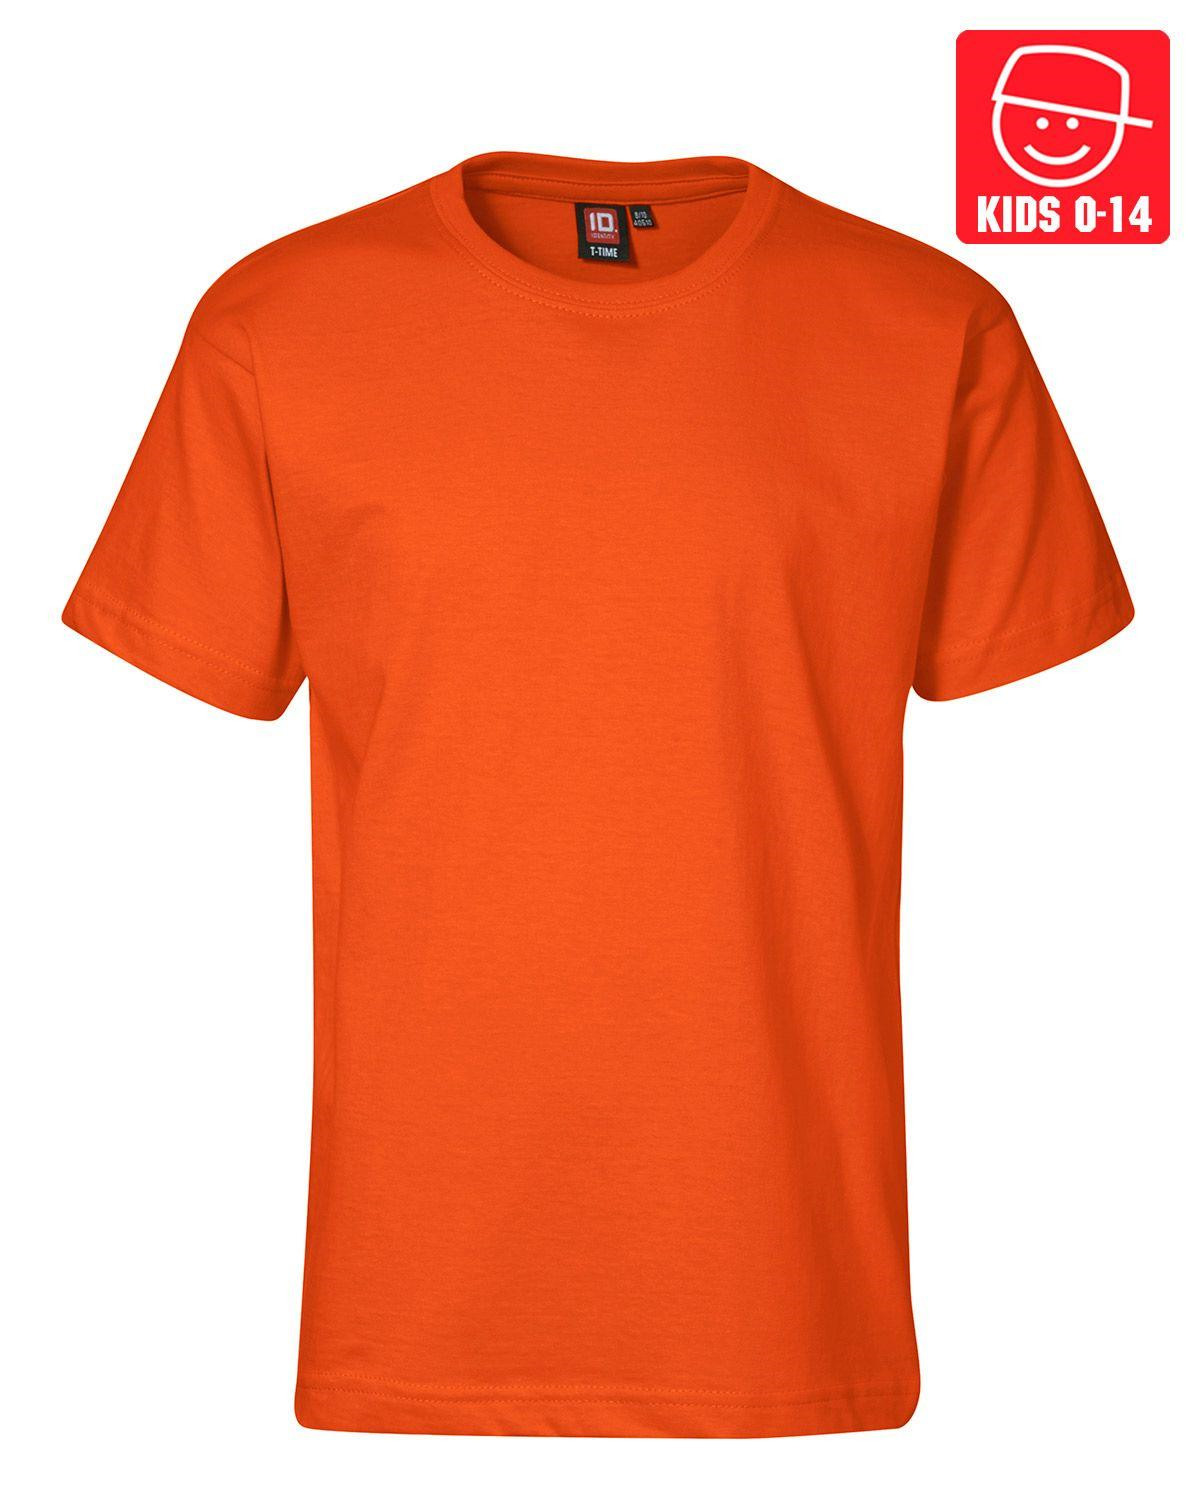 Image of   ID T-TIME T-shirt (Orange, 158)